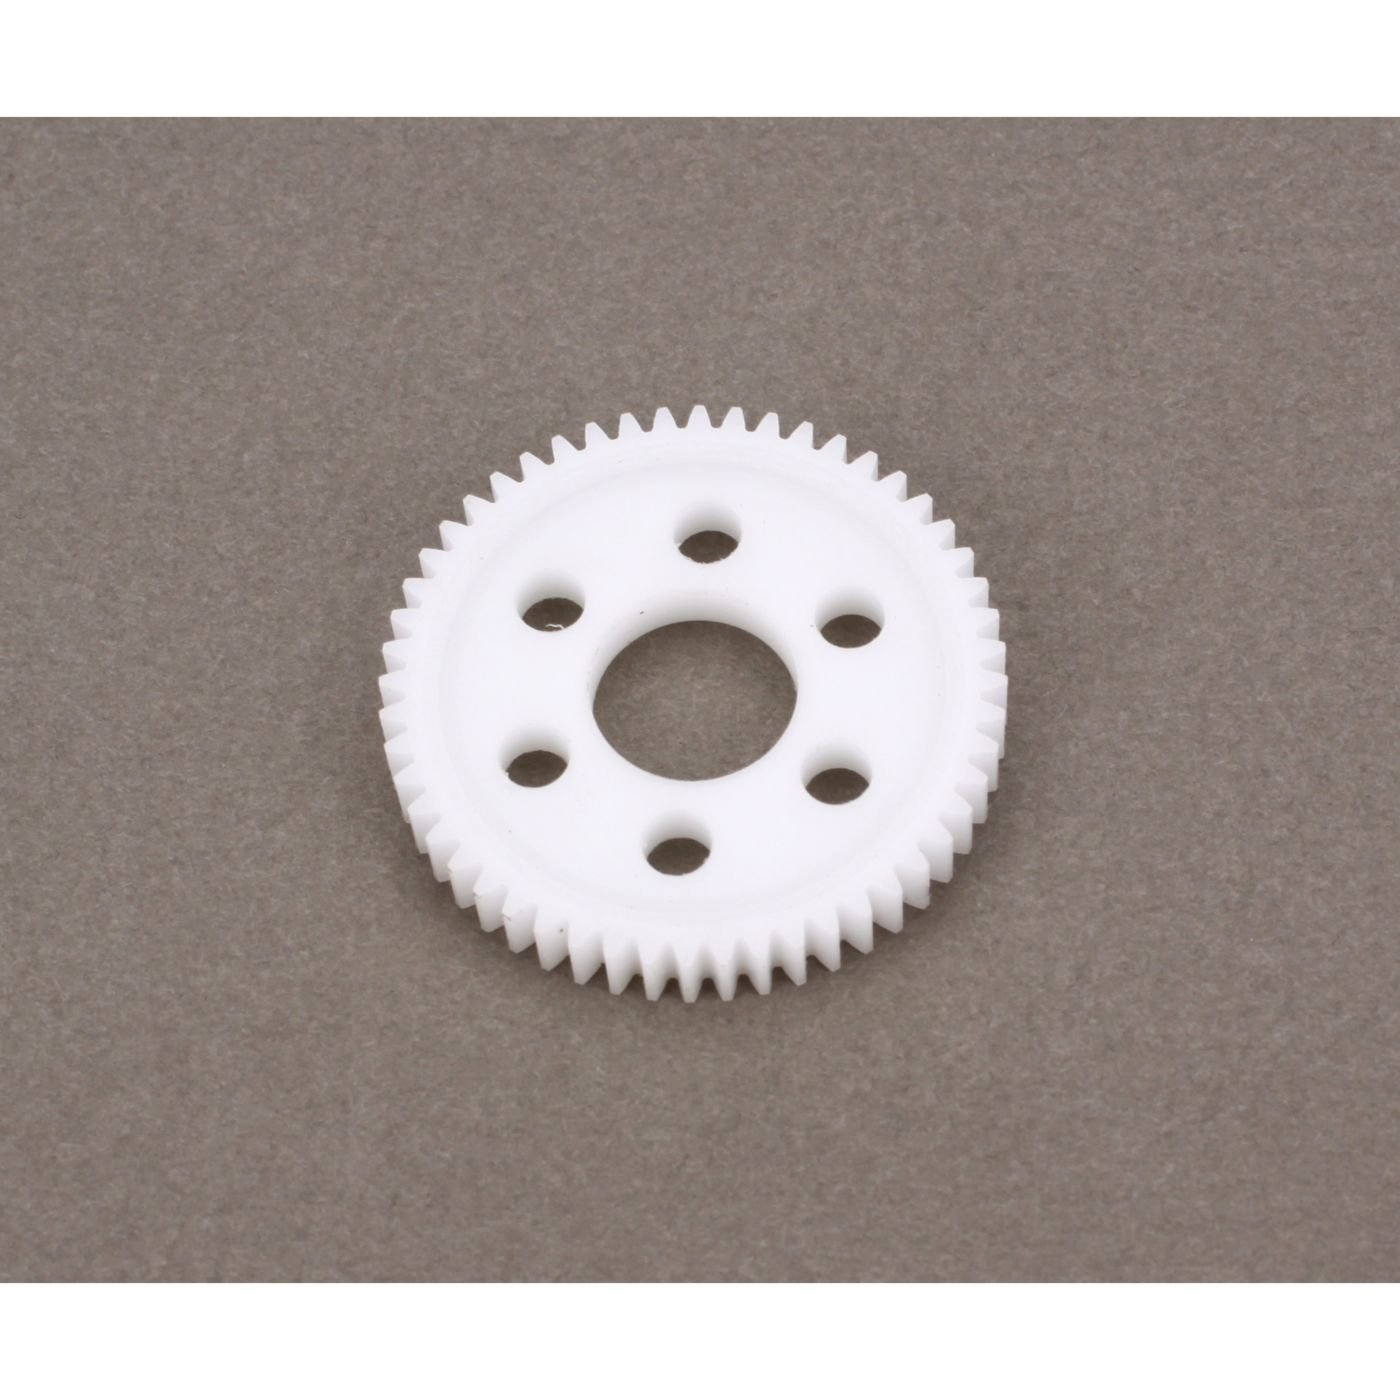 Robinson Racing Machined Machined Racing 48 Pitch Machined spur 52 Zähne dbff5a